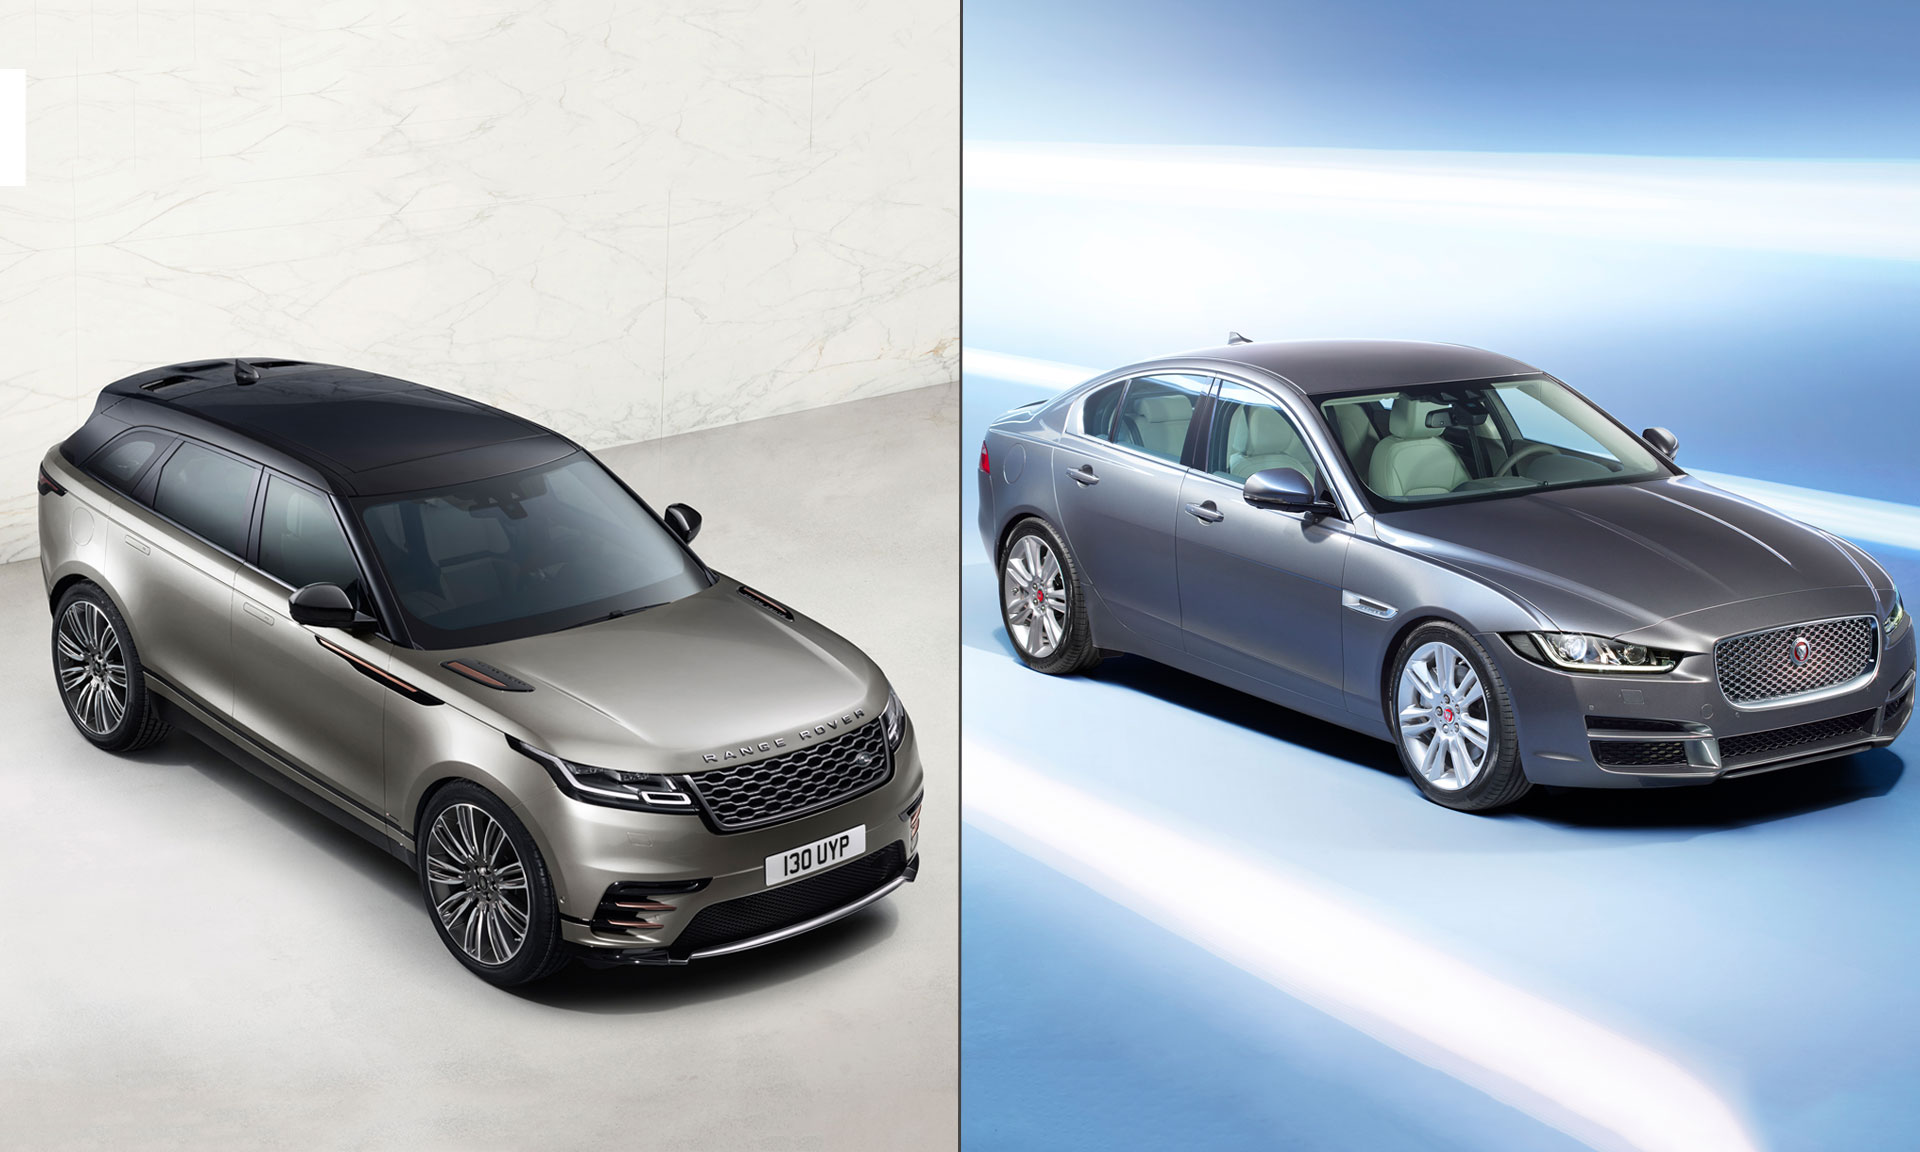 Jaguar and Land Rover cars recalled for excessive CO2 emissions